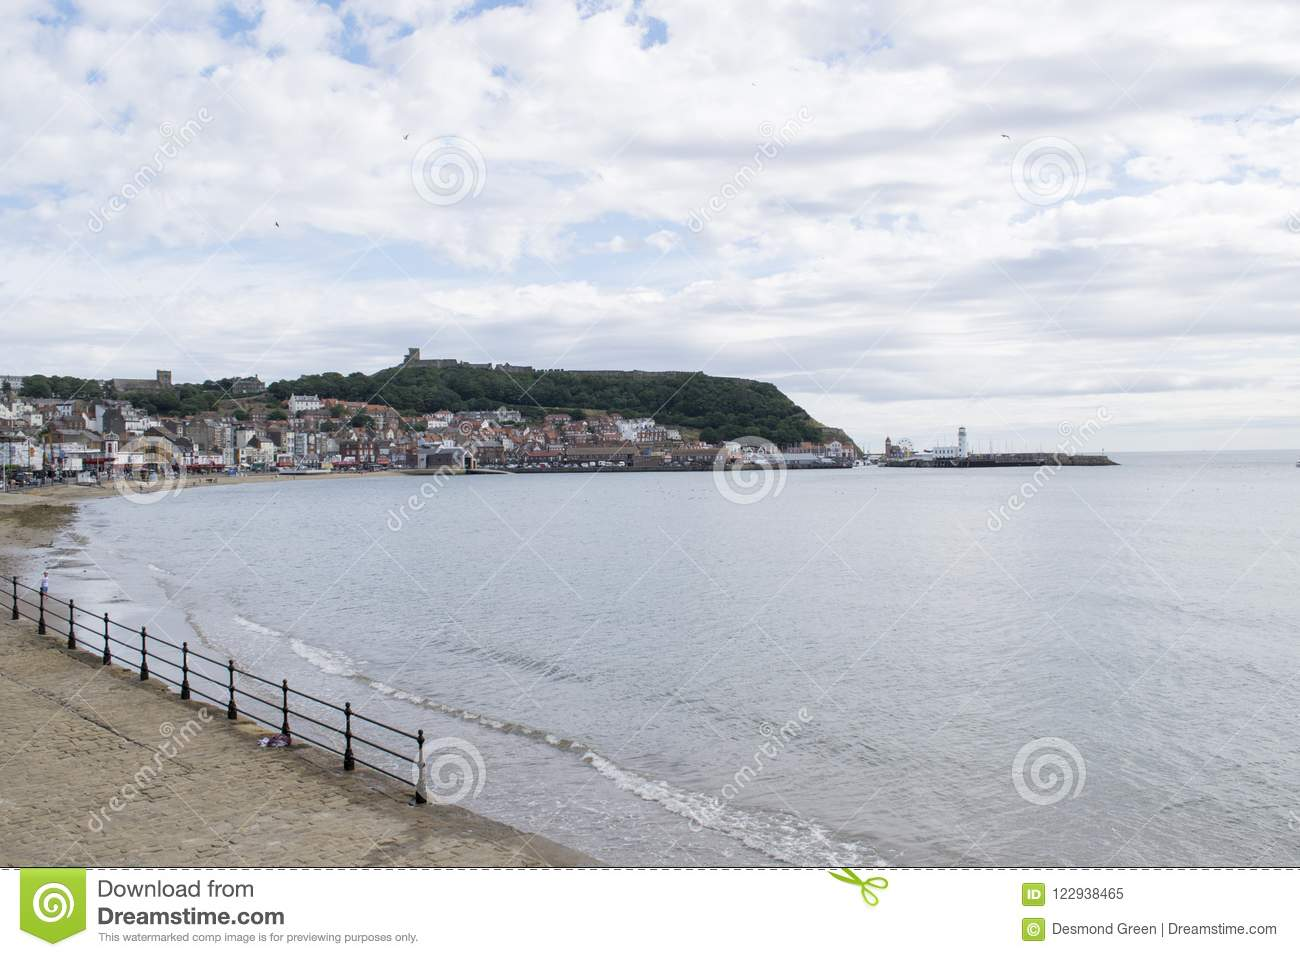 Scarborough, bahía del sur, North Yorkshire, Inglaterra, Reino Unido